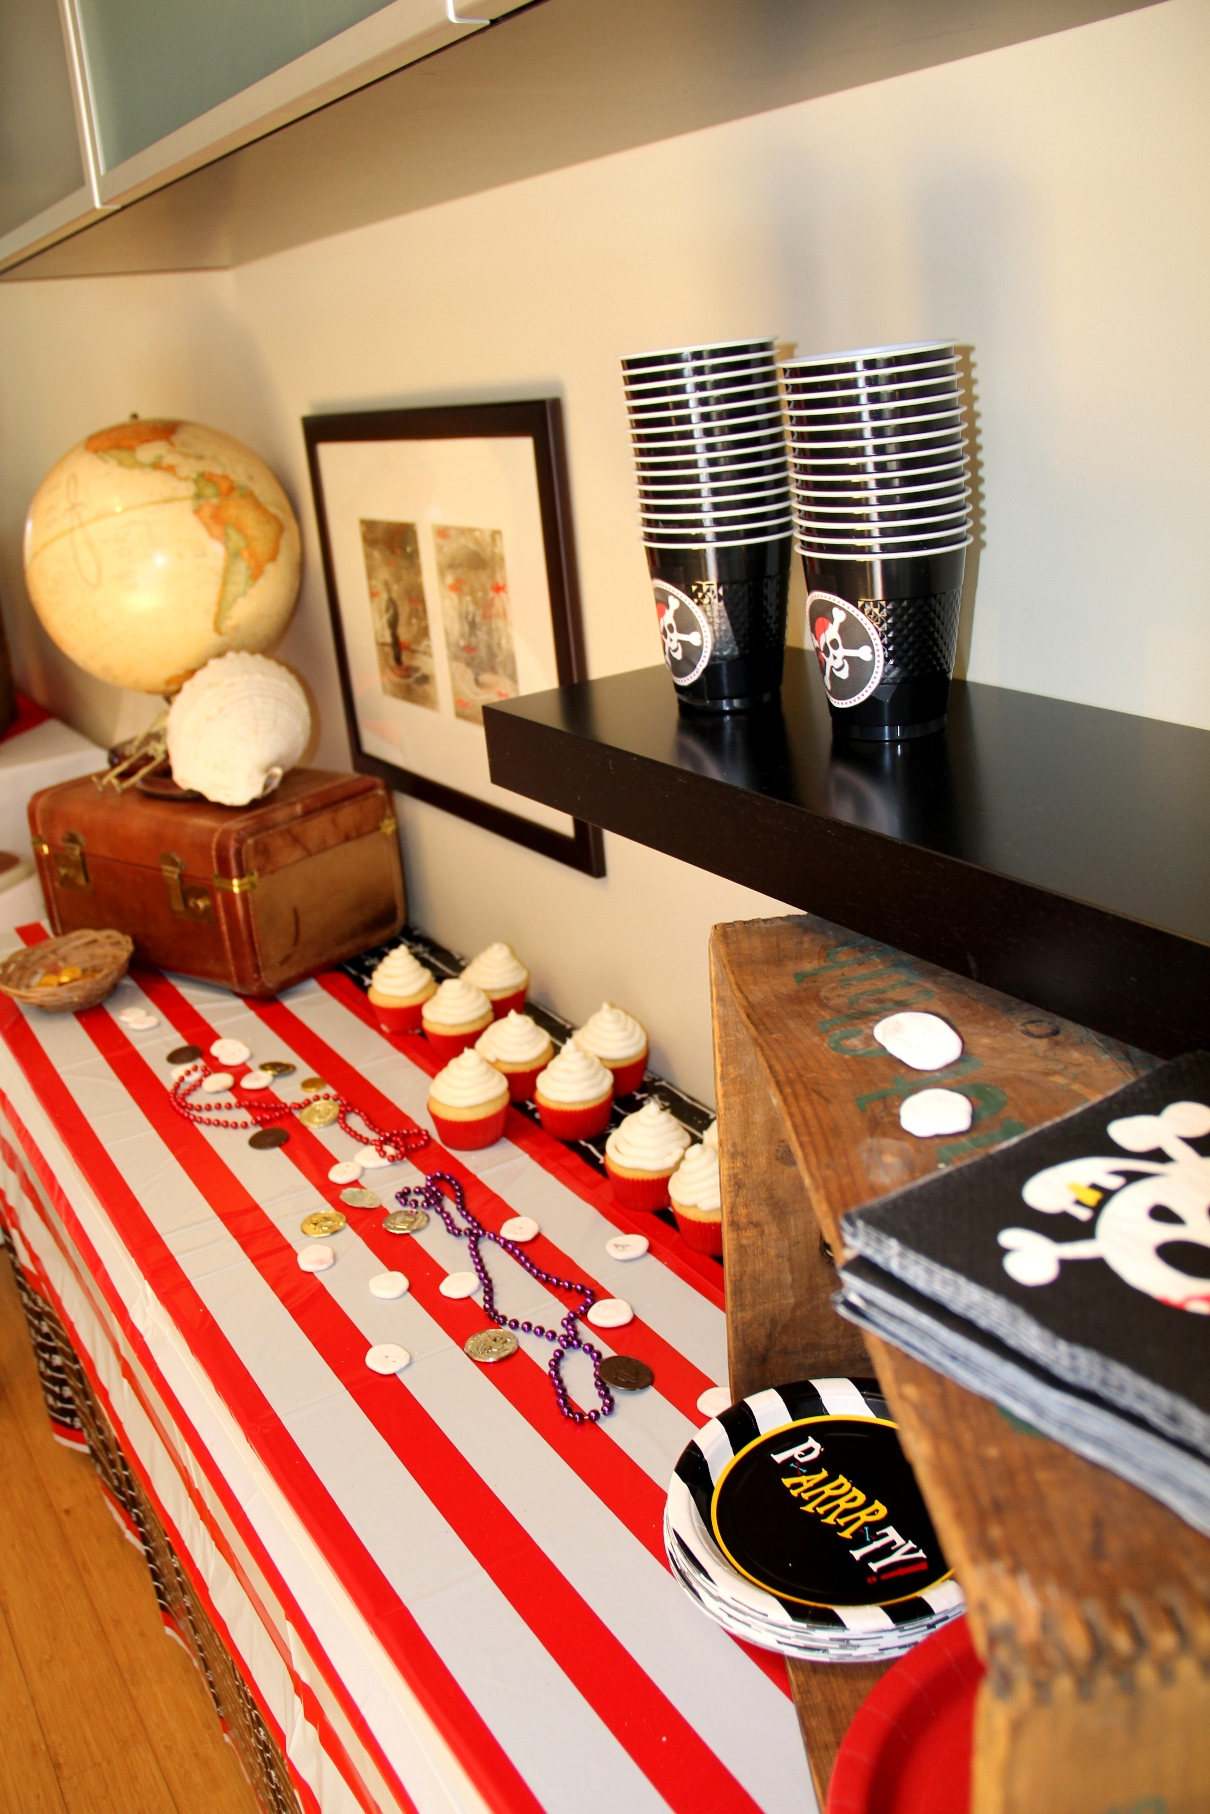 Pirate, cupcakes, boston decor, decor, los angeles, skulls, pirate party, birthday party ideas, party planning, event planning, entertainer, side table ideas, party ideas, pirate decor, travel, stripes